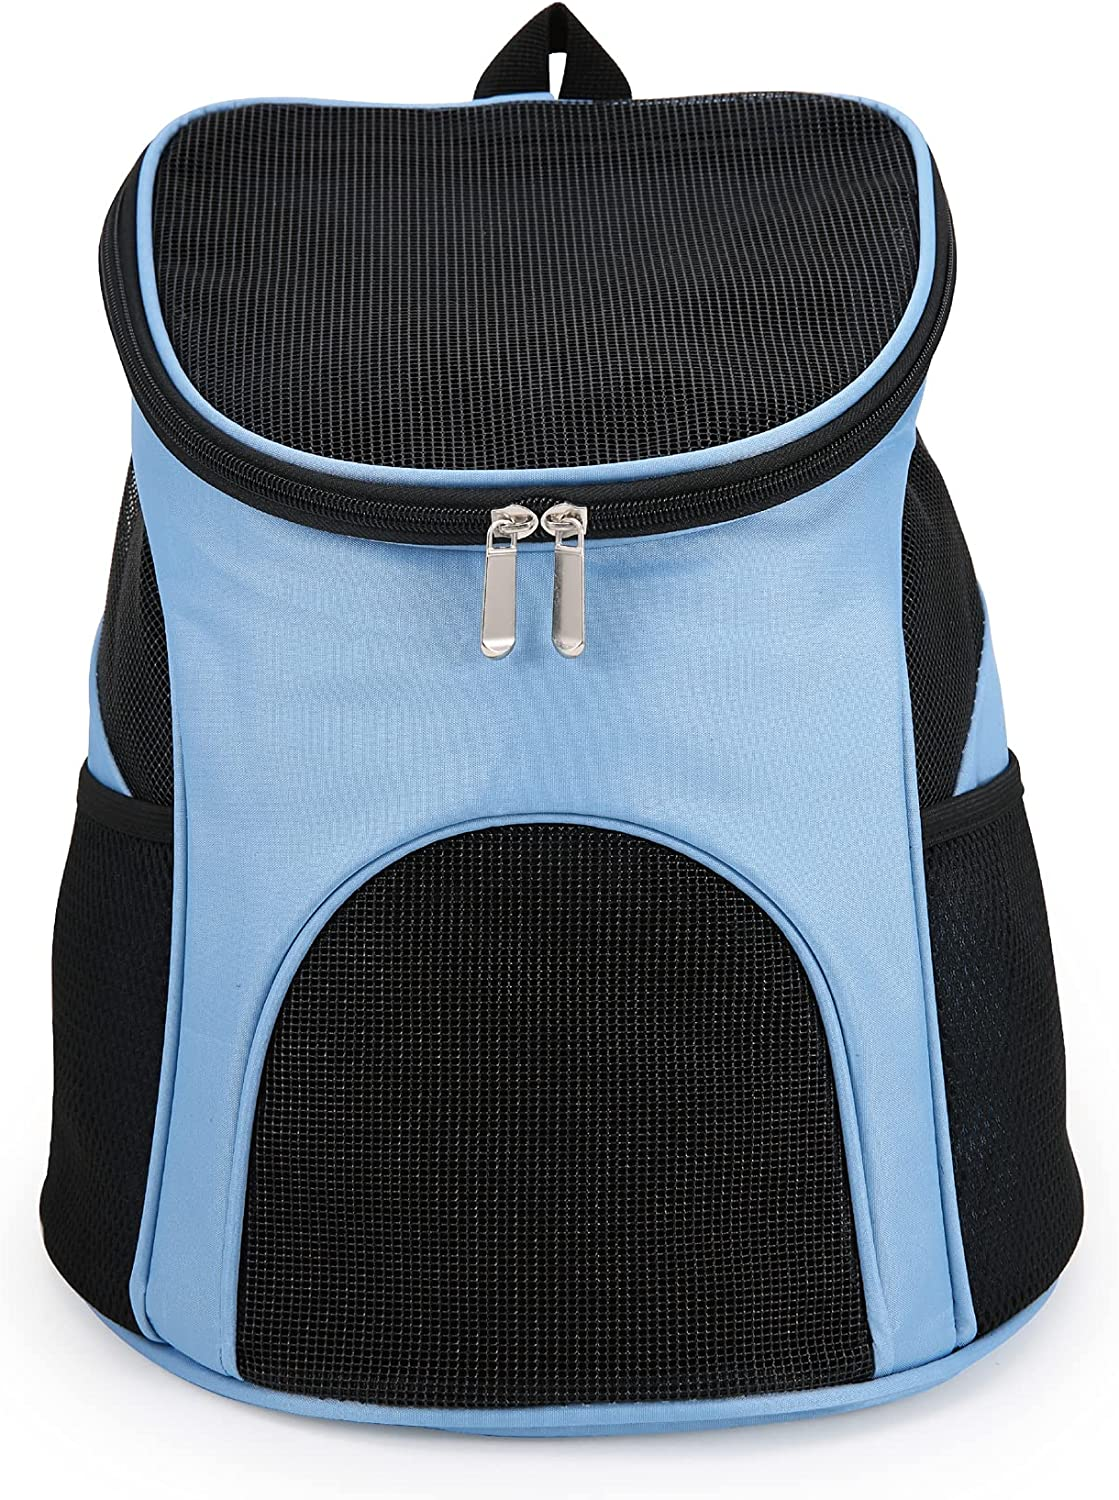 outlet BesyPro Dog Backpack Max 78% OFF Carrier for Ventilated Backp Dogs Small Cat